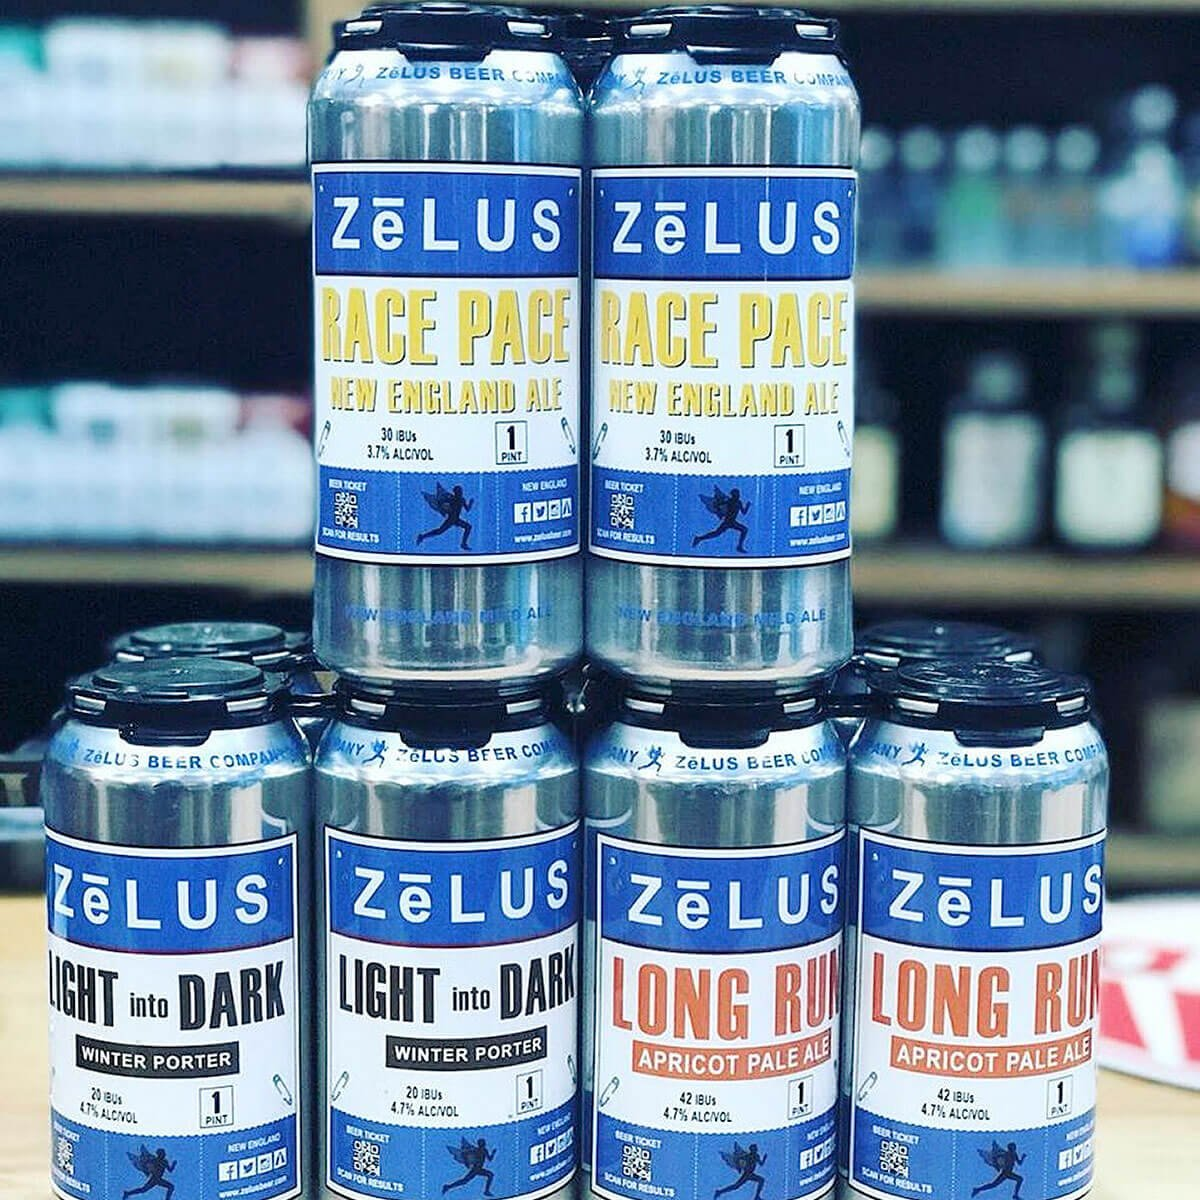 Stacks of canned beers offered by ZēLUS Beer Company